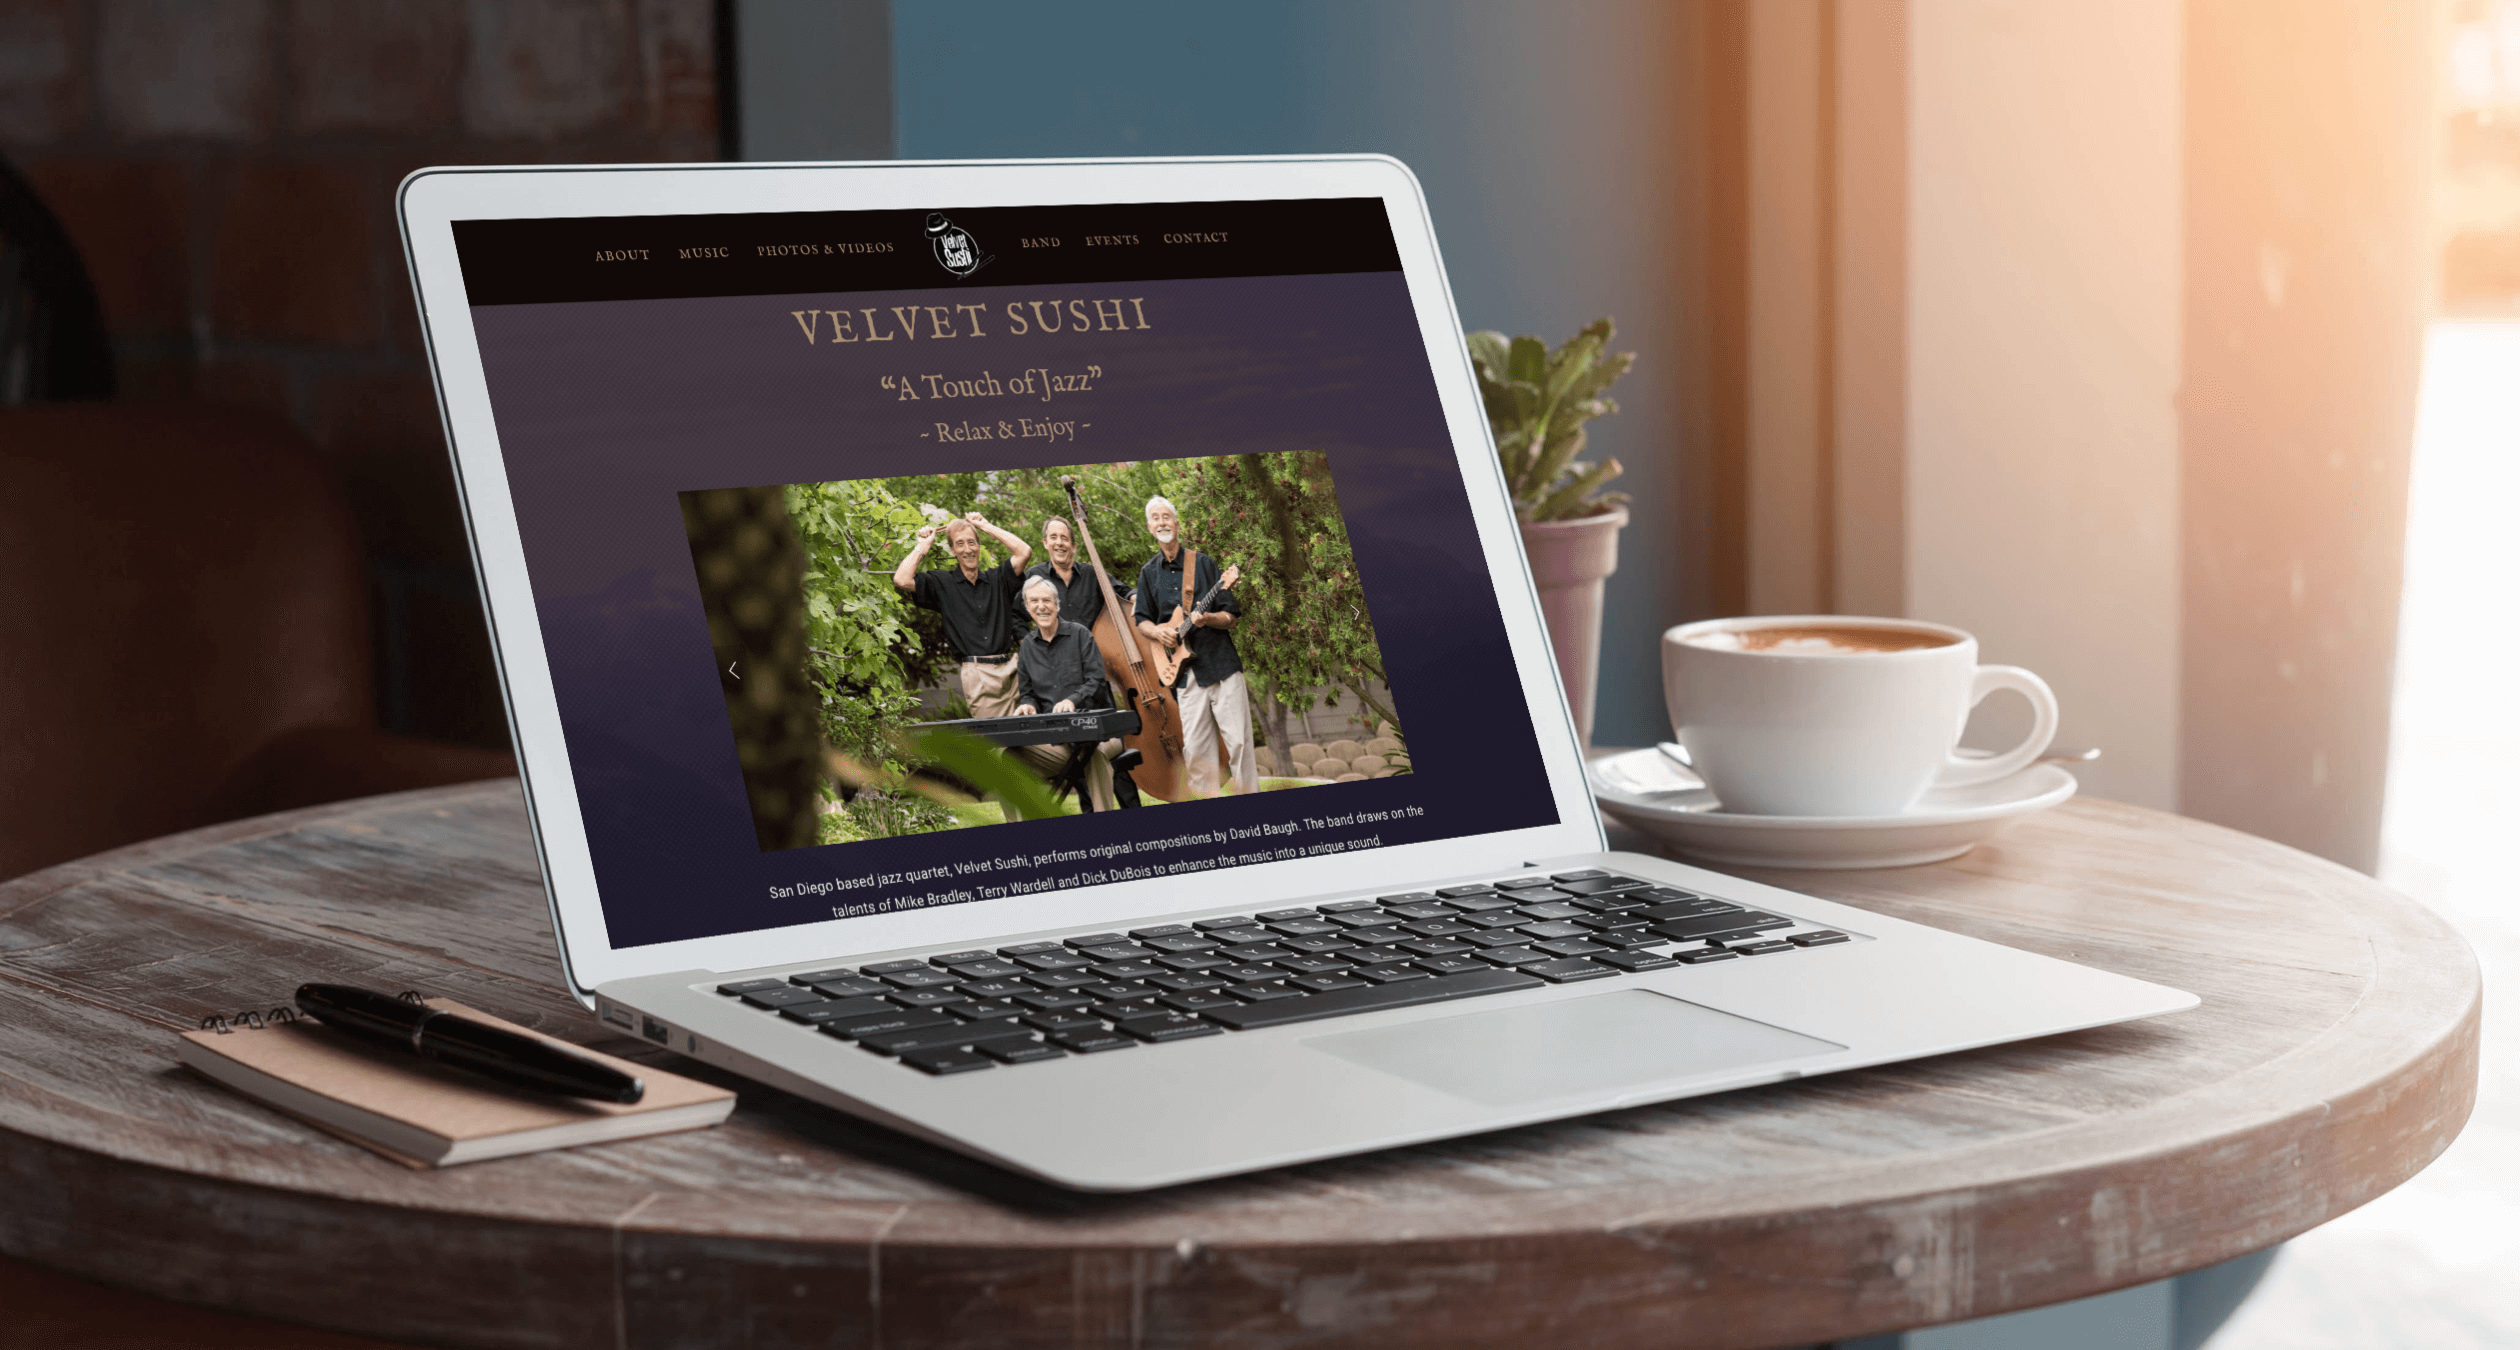 Velvet Sushi Band - Phoenix Website Design Studio